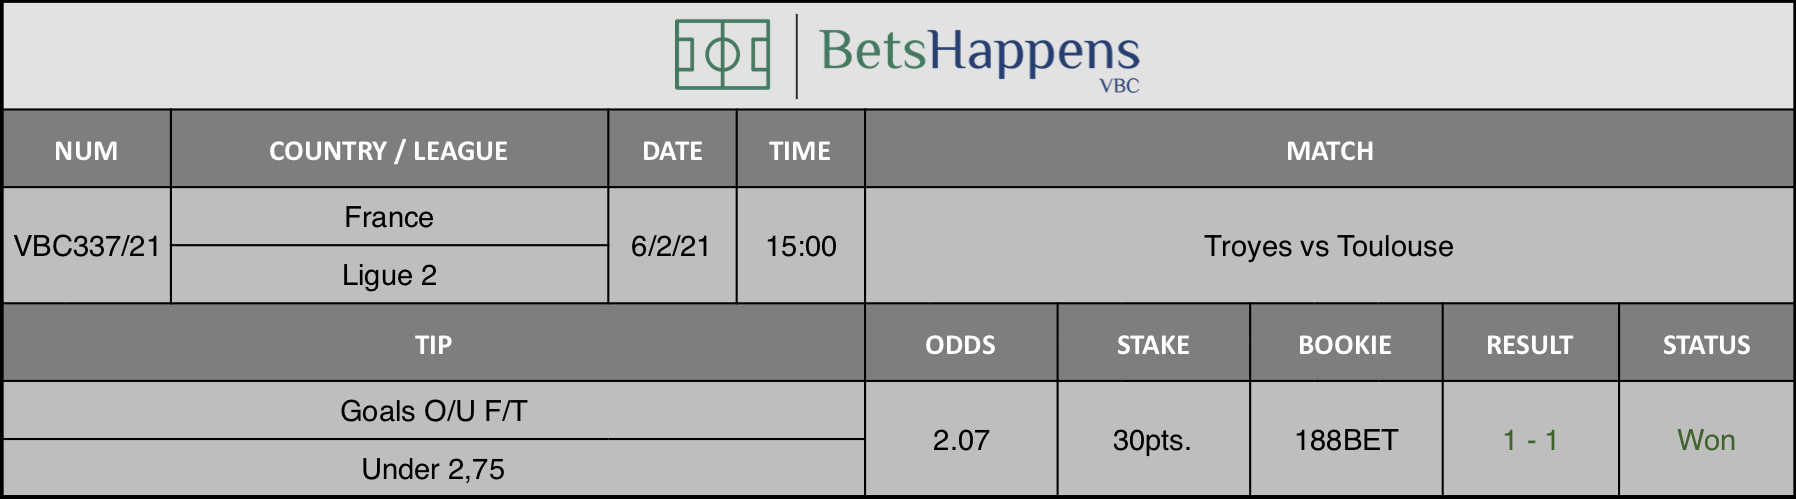 Results of our tip for the Troyes vs Toulouse match where Goals O/U F/T Under 2,75 is recommended.